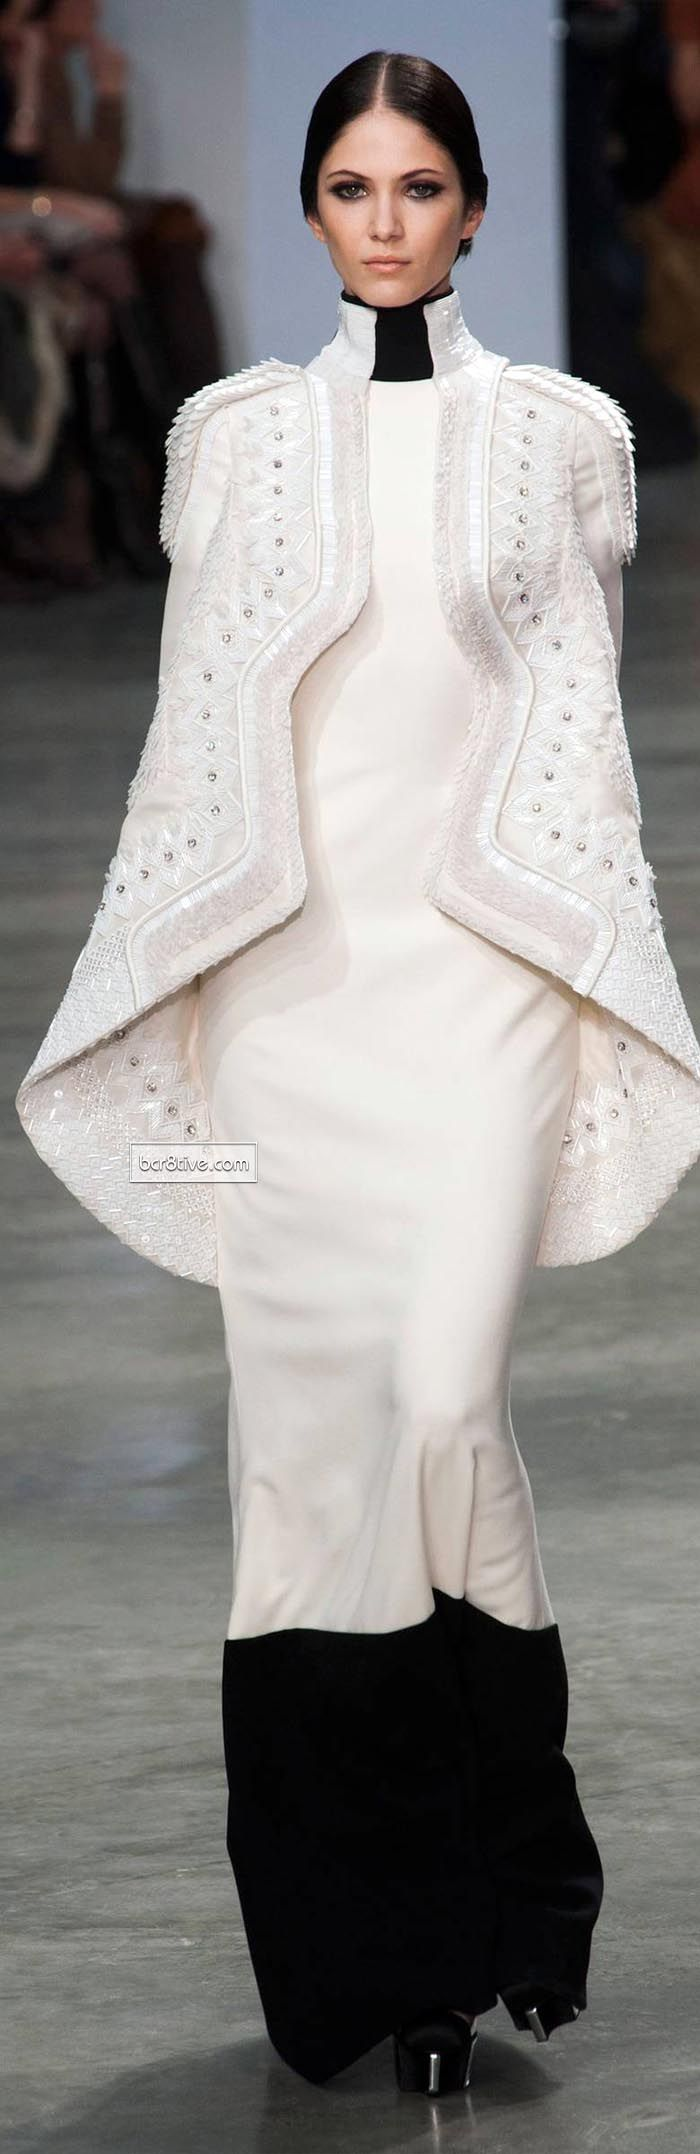 Stephane Rolland Spring Summer 2013-14 Haute Couture....Star Wars here we come